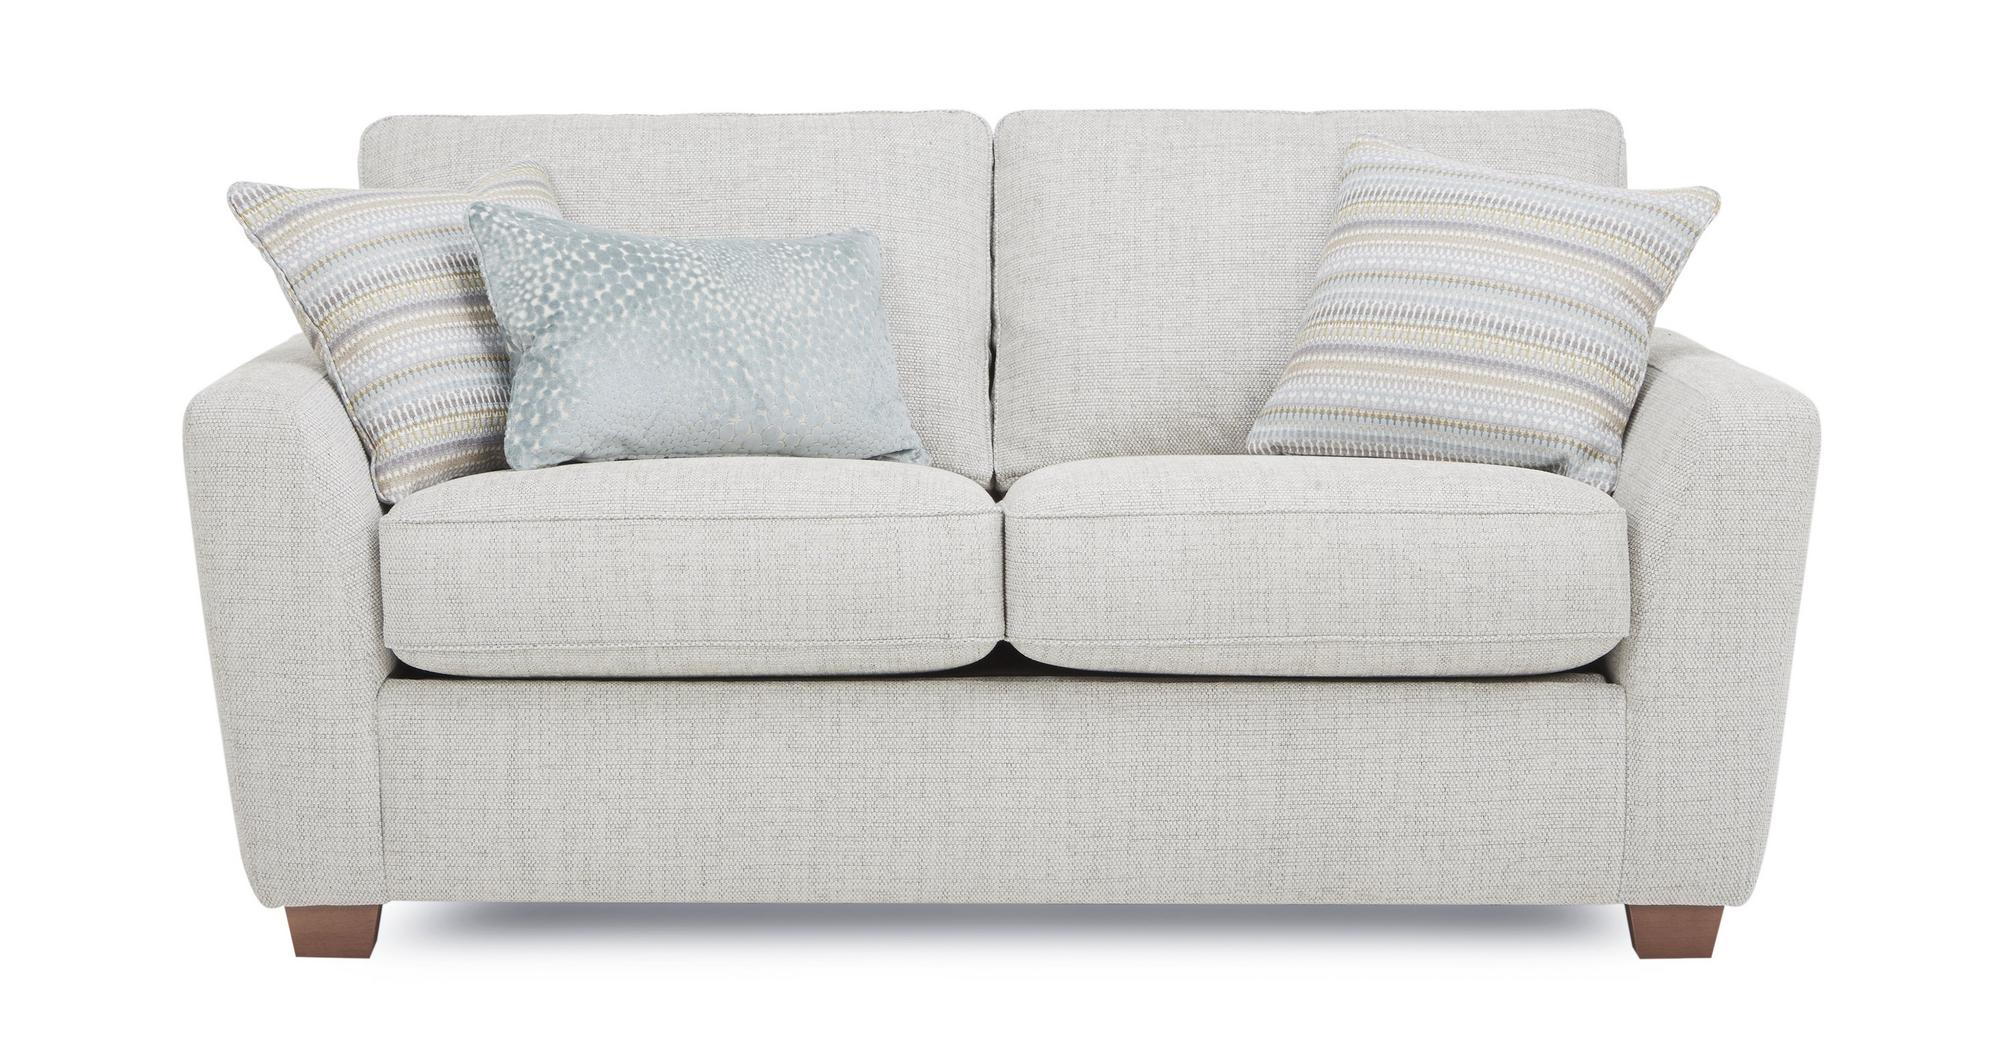 Dfs Sophia Pearl Fabric Medium Deluxe Sofa Bed Ebay